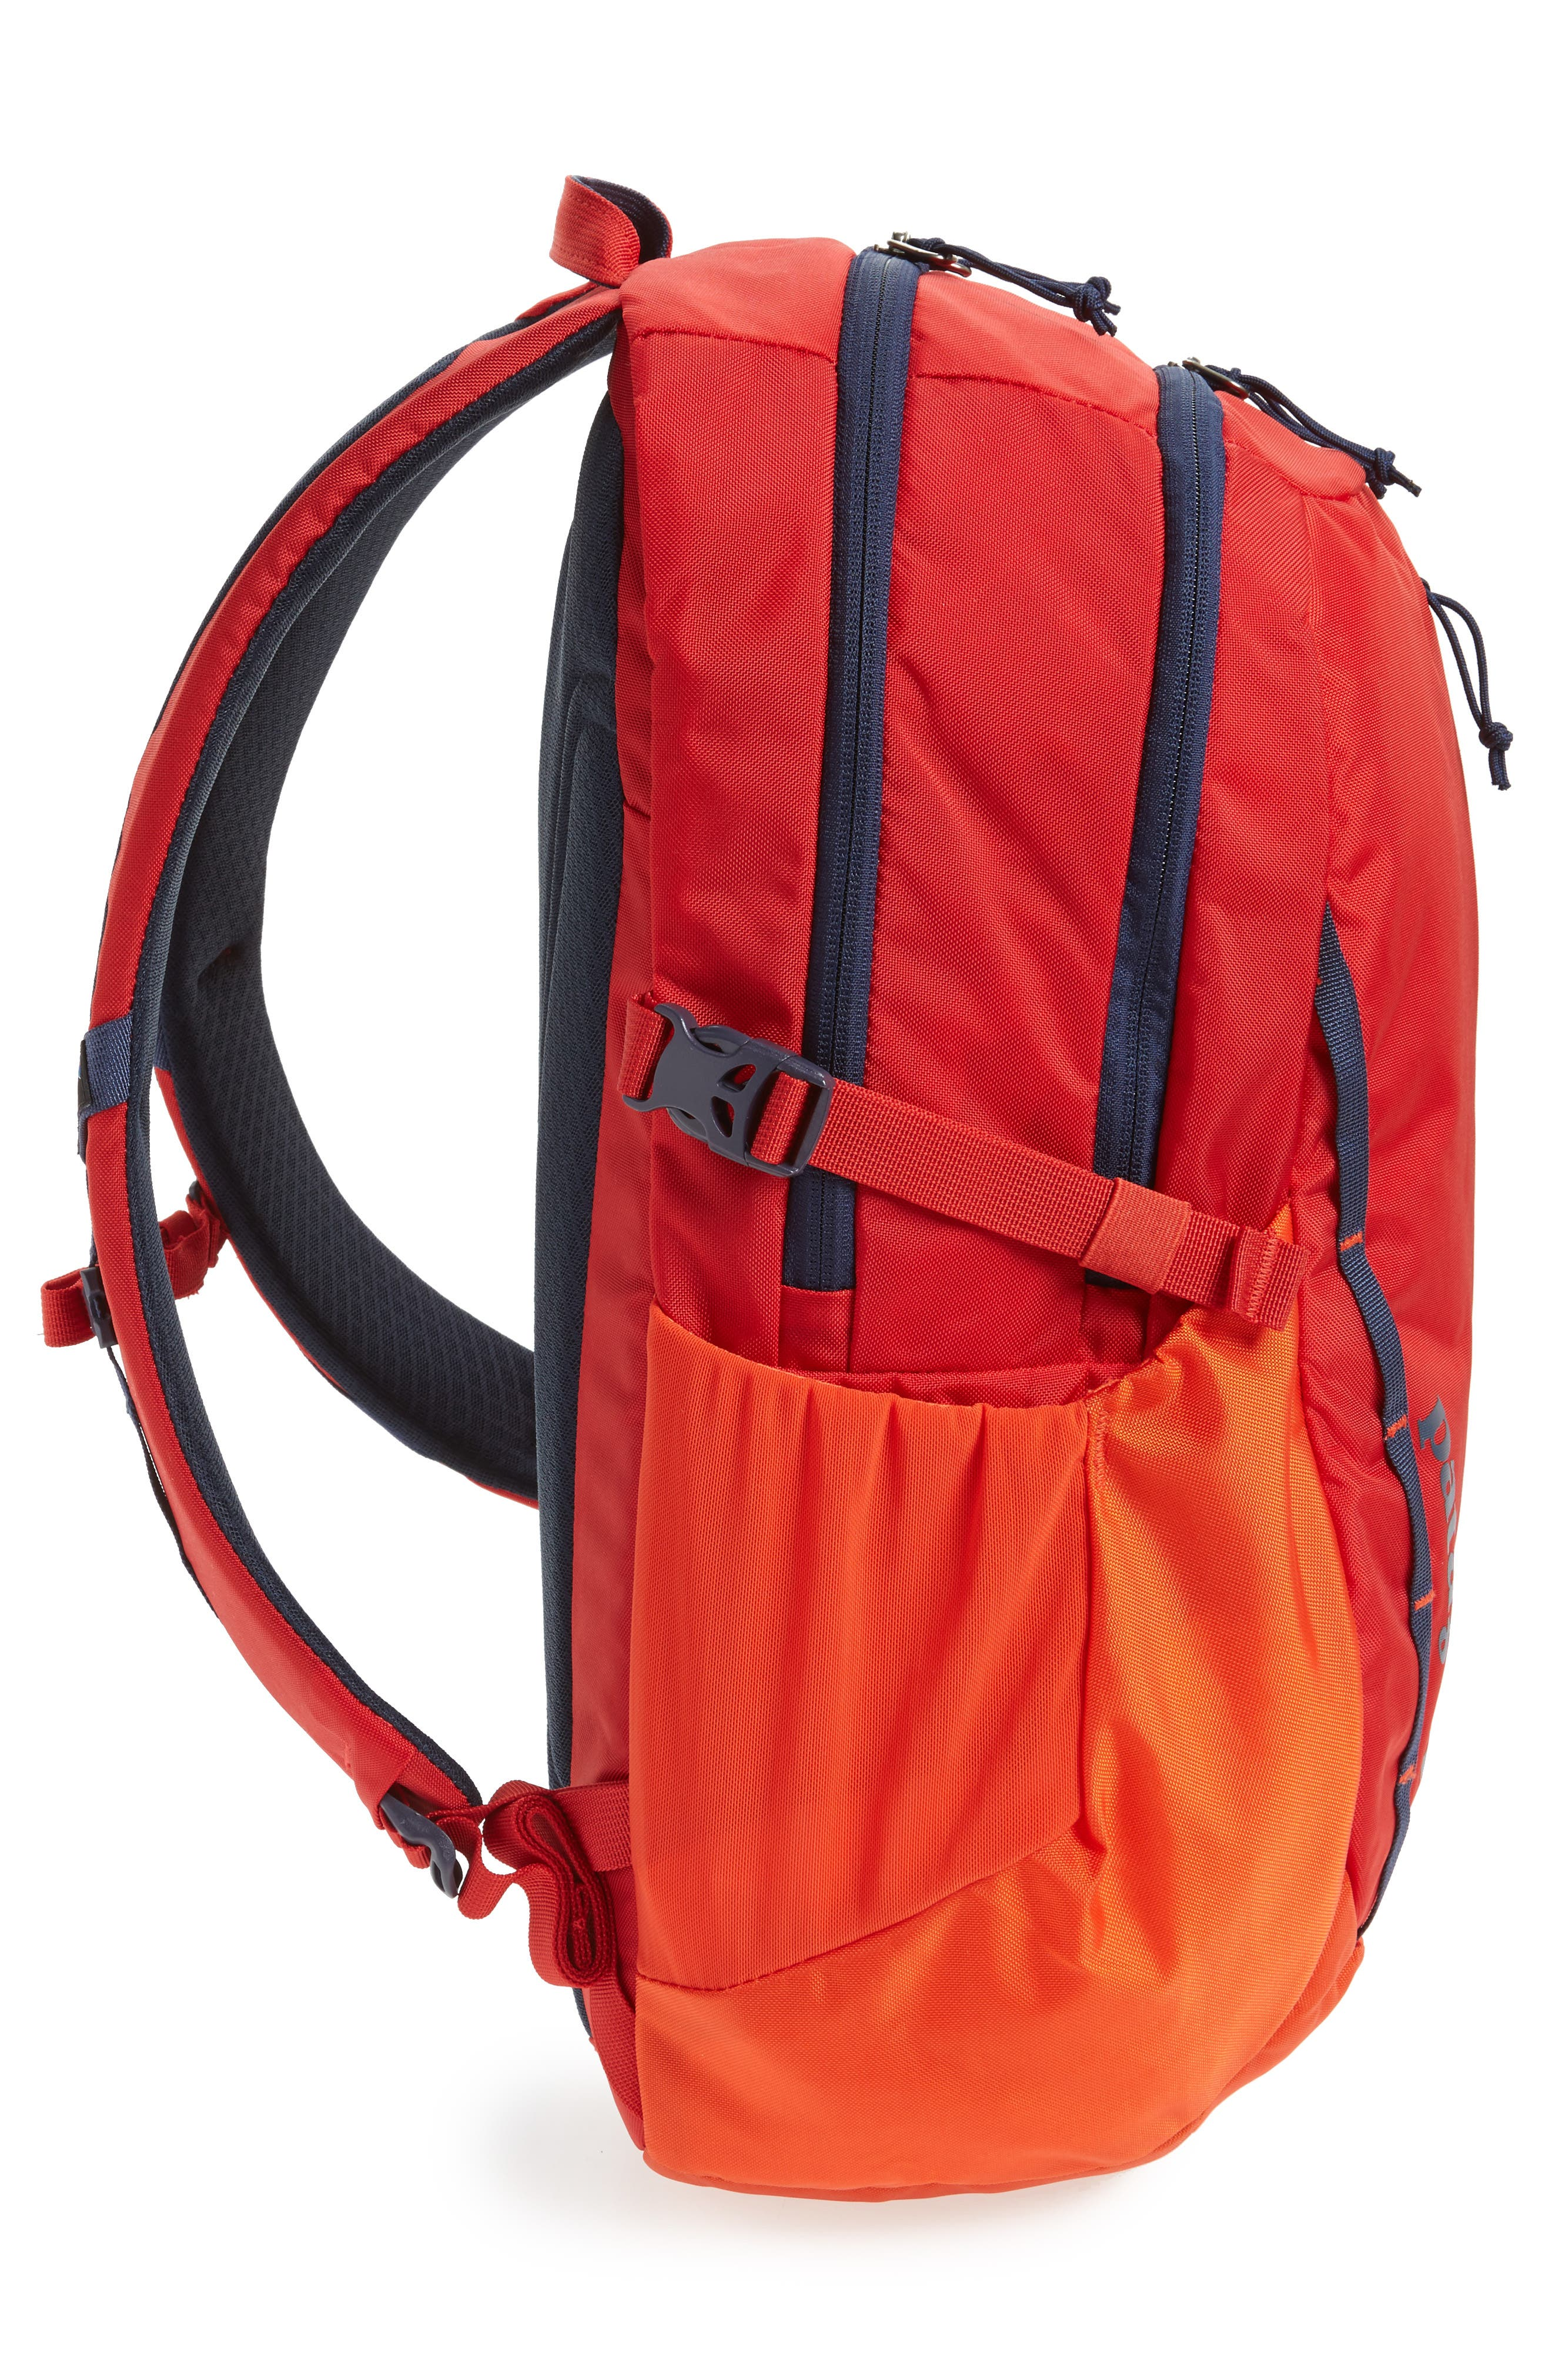 28L Refugio Backpack,                             Alternate thumbnail 5, color,                             Paintbrush Red